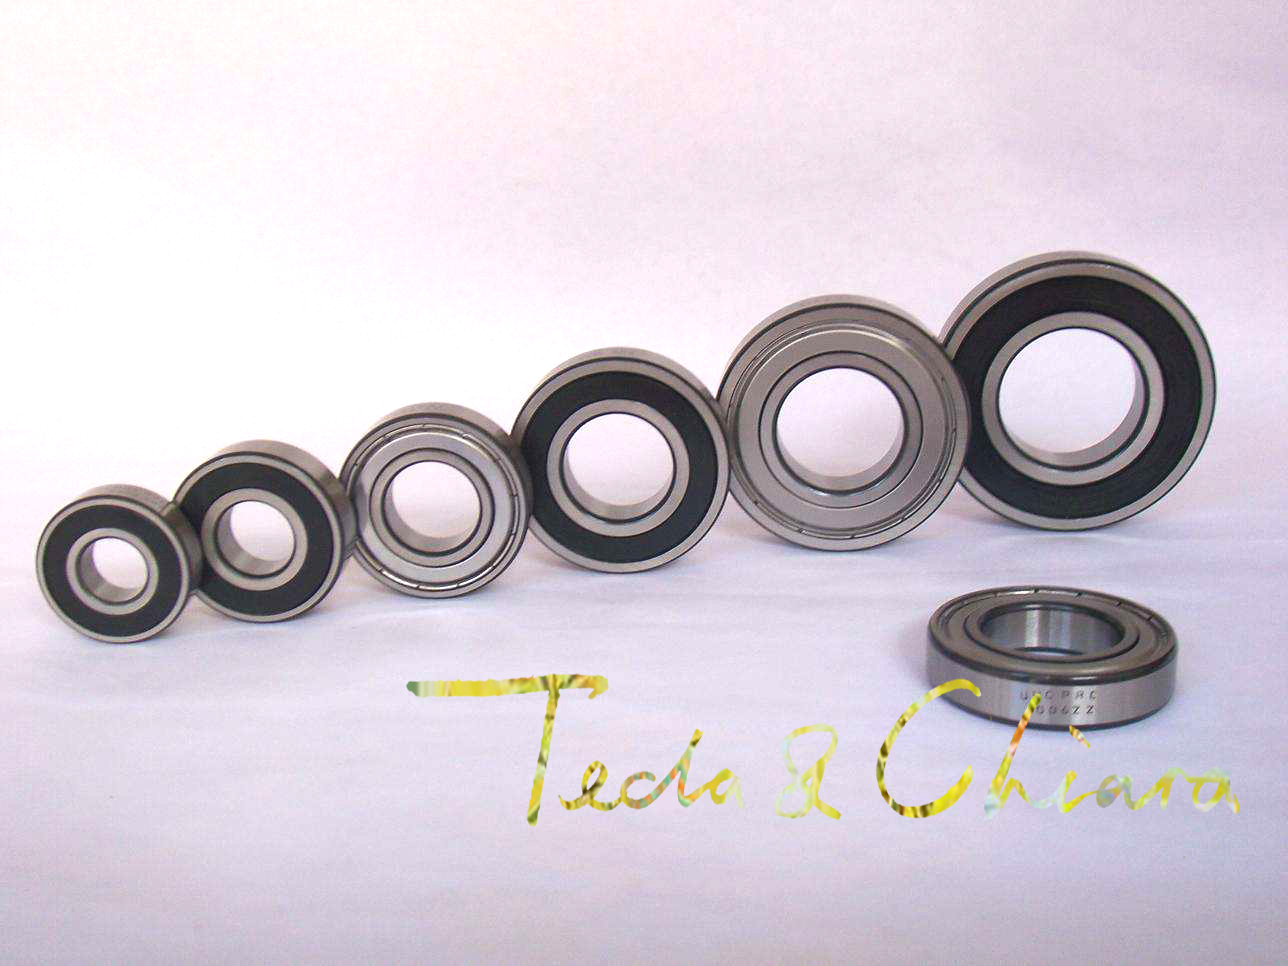 6805 6805ZZ 6805RS 6805-2Z 6805Z 6805-2RS ZZ RS RZ 2RZ Deep Groove Ball Bearings 25 x 37 x 7mm High Quality free shipping 25x47x12mm deep groove ball bearings 6005 zz 2z 6005zz bearing 6005zz 6005 2rs